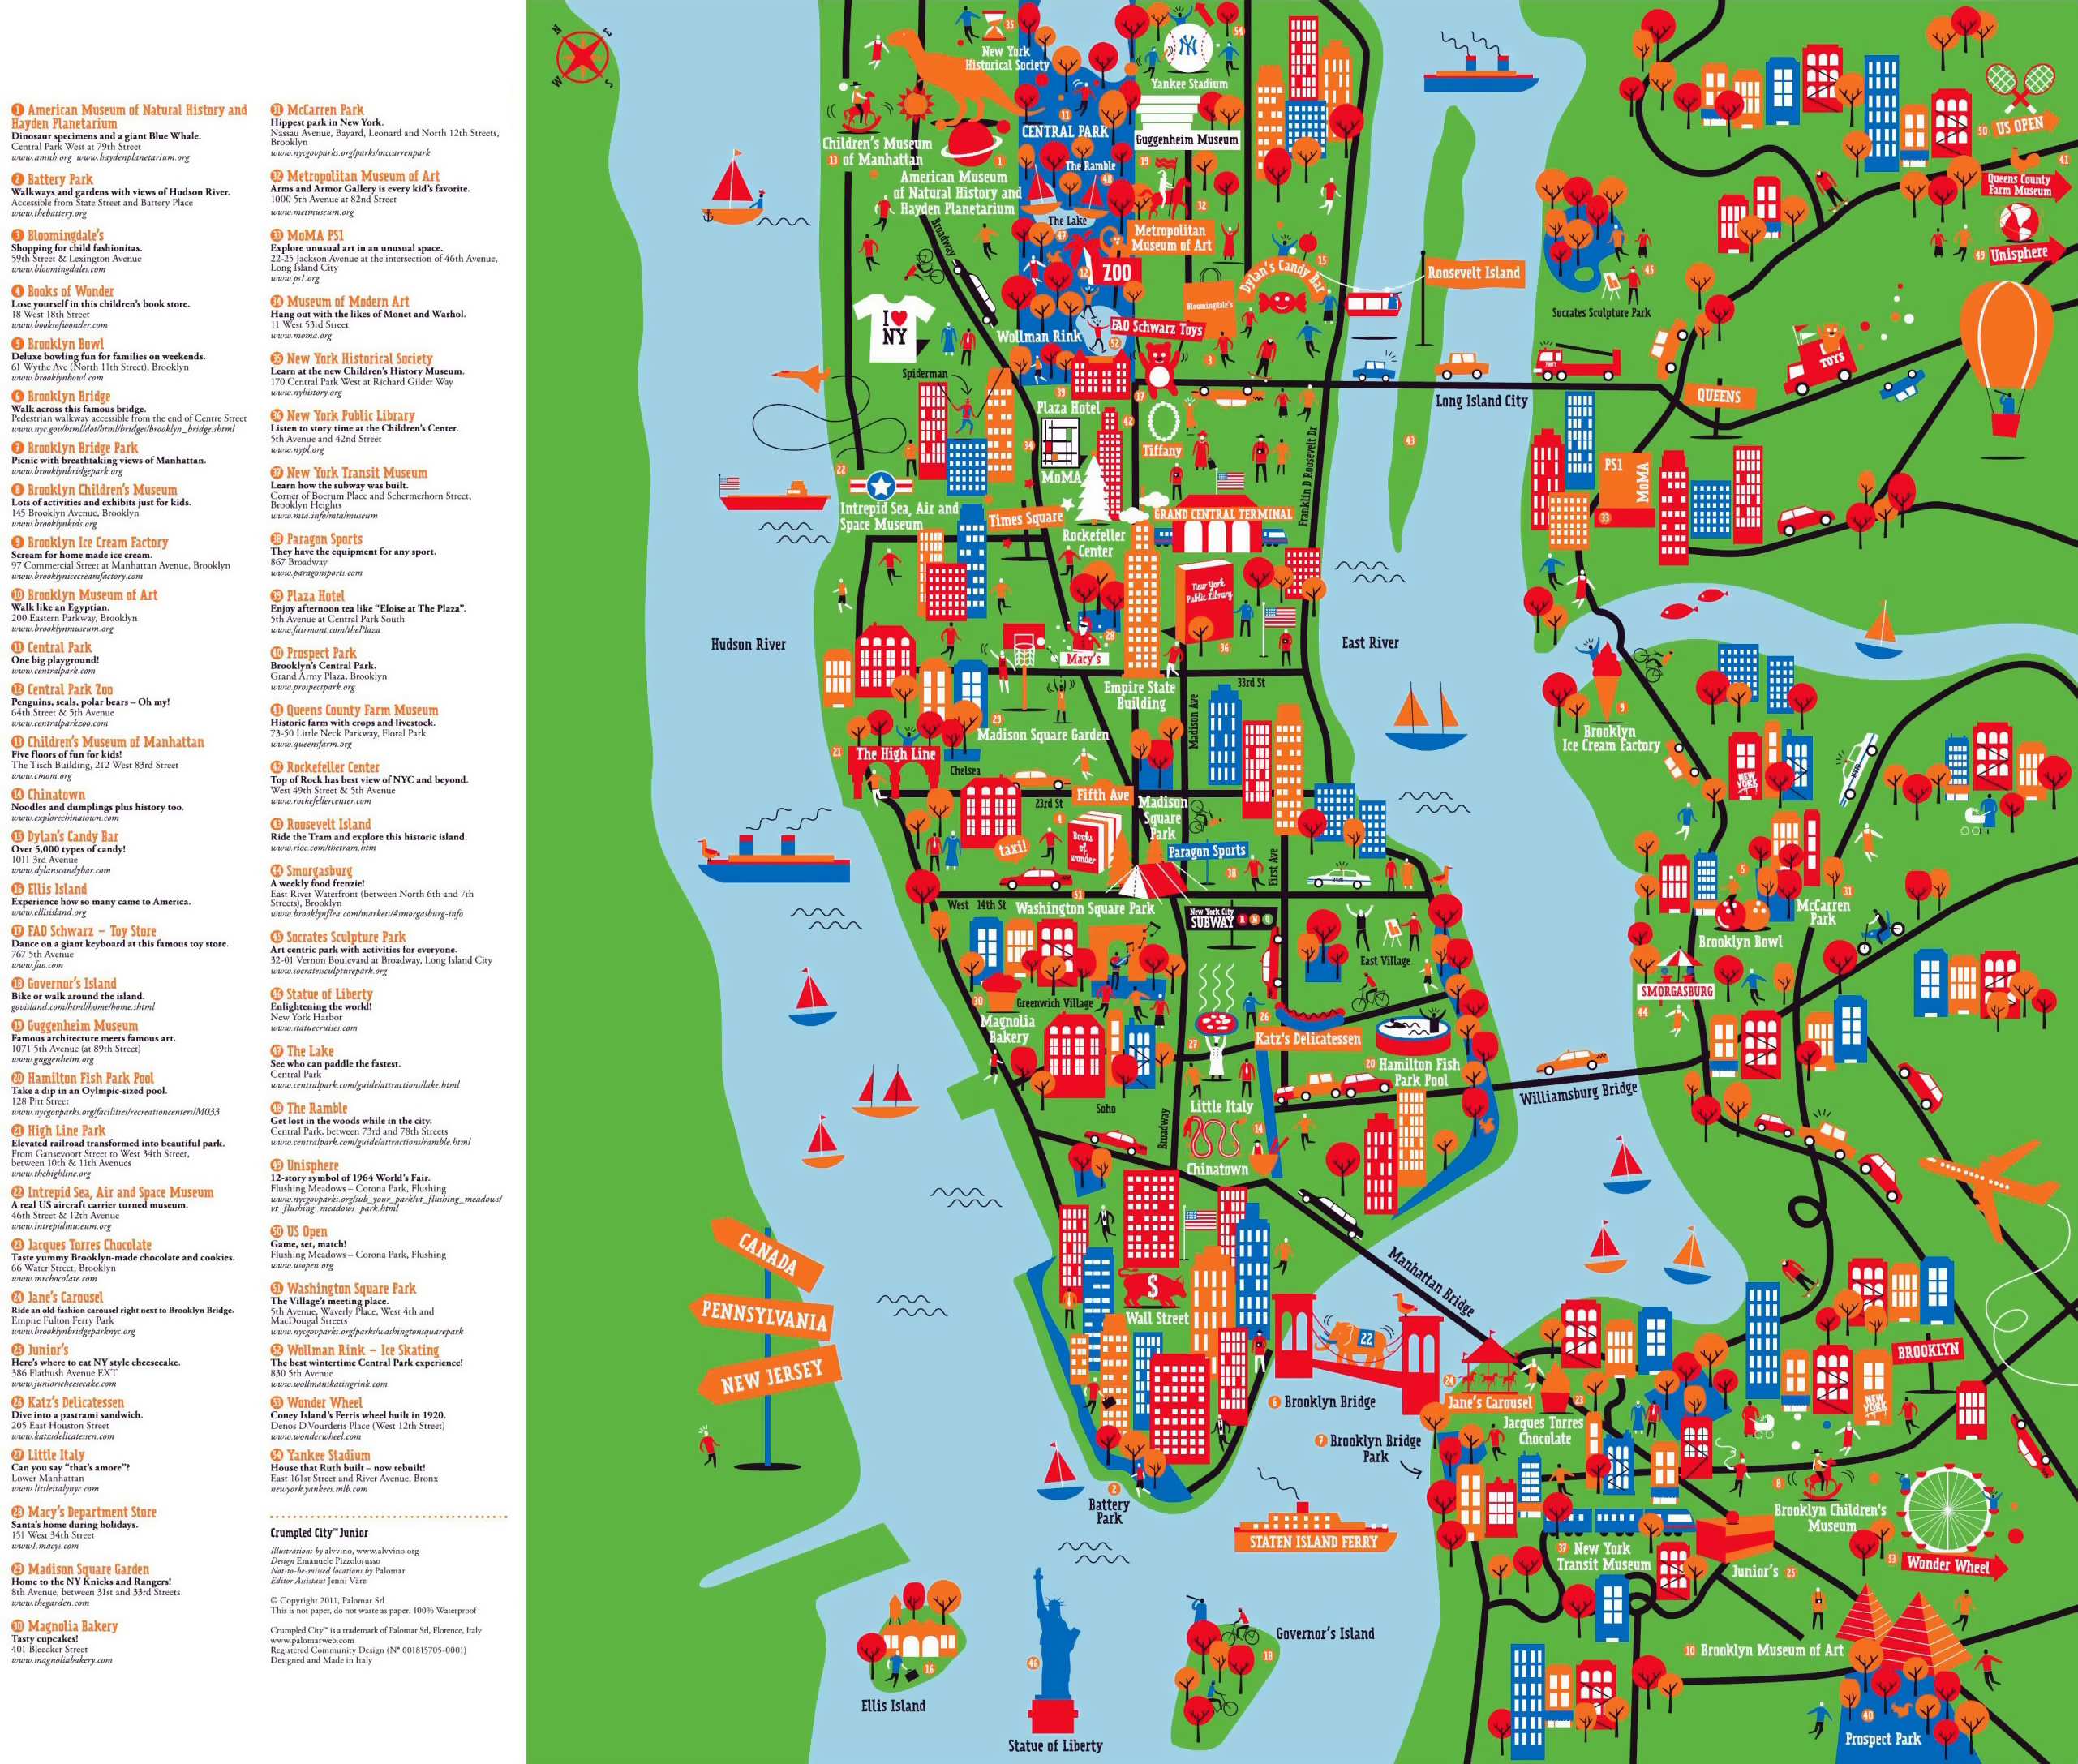 New York Tourist Map Large detailed New York tourist attractions map | New York | USA